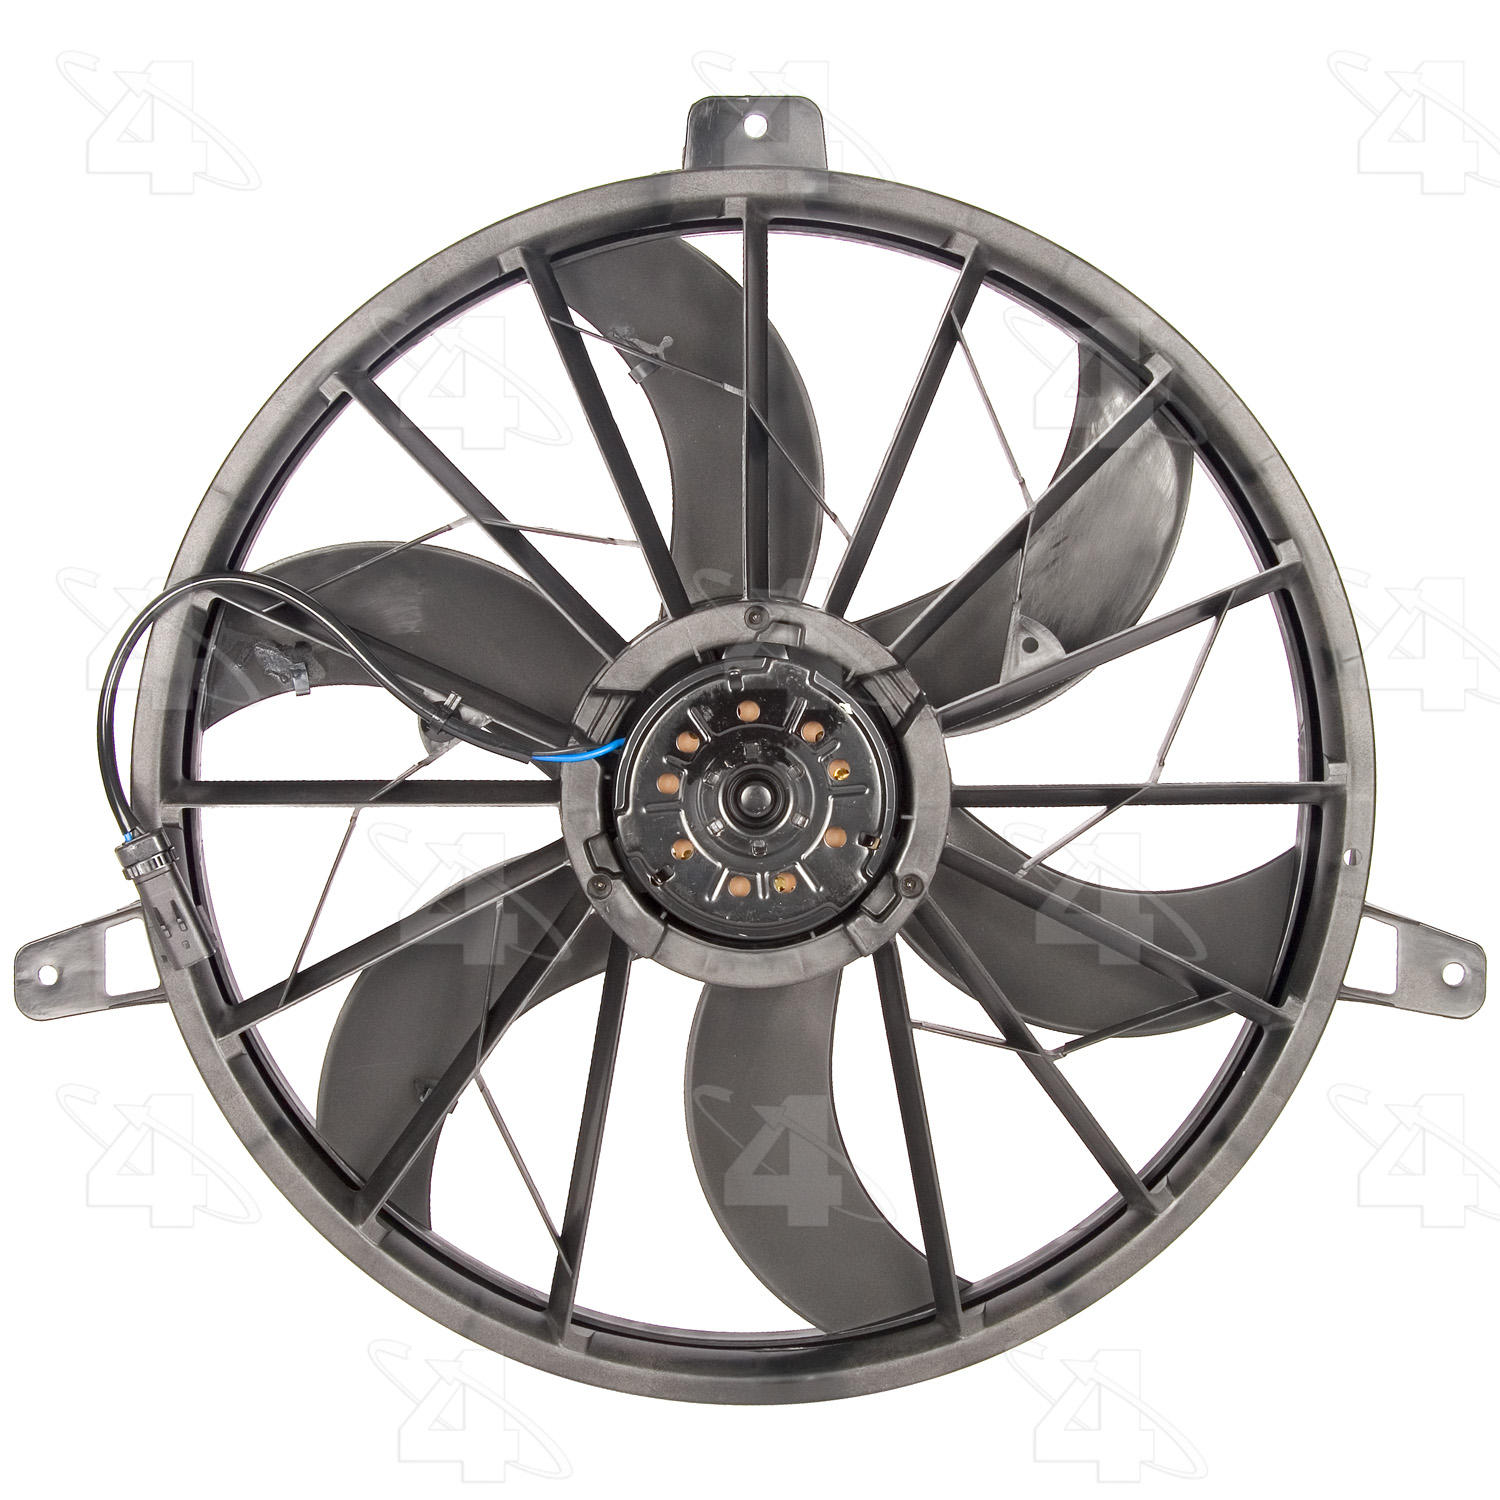 Four Seasons 75254 Engine Cooling Fan Assembly Fits 2001-2004 Jeep Grand Cherokee